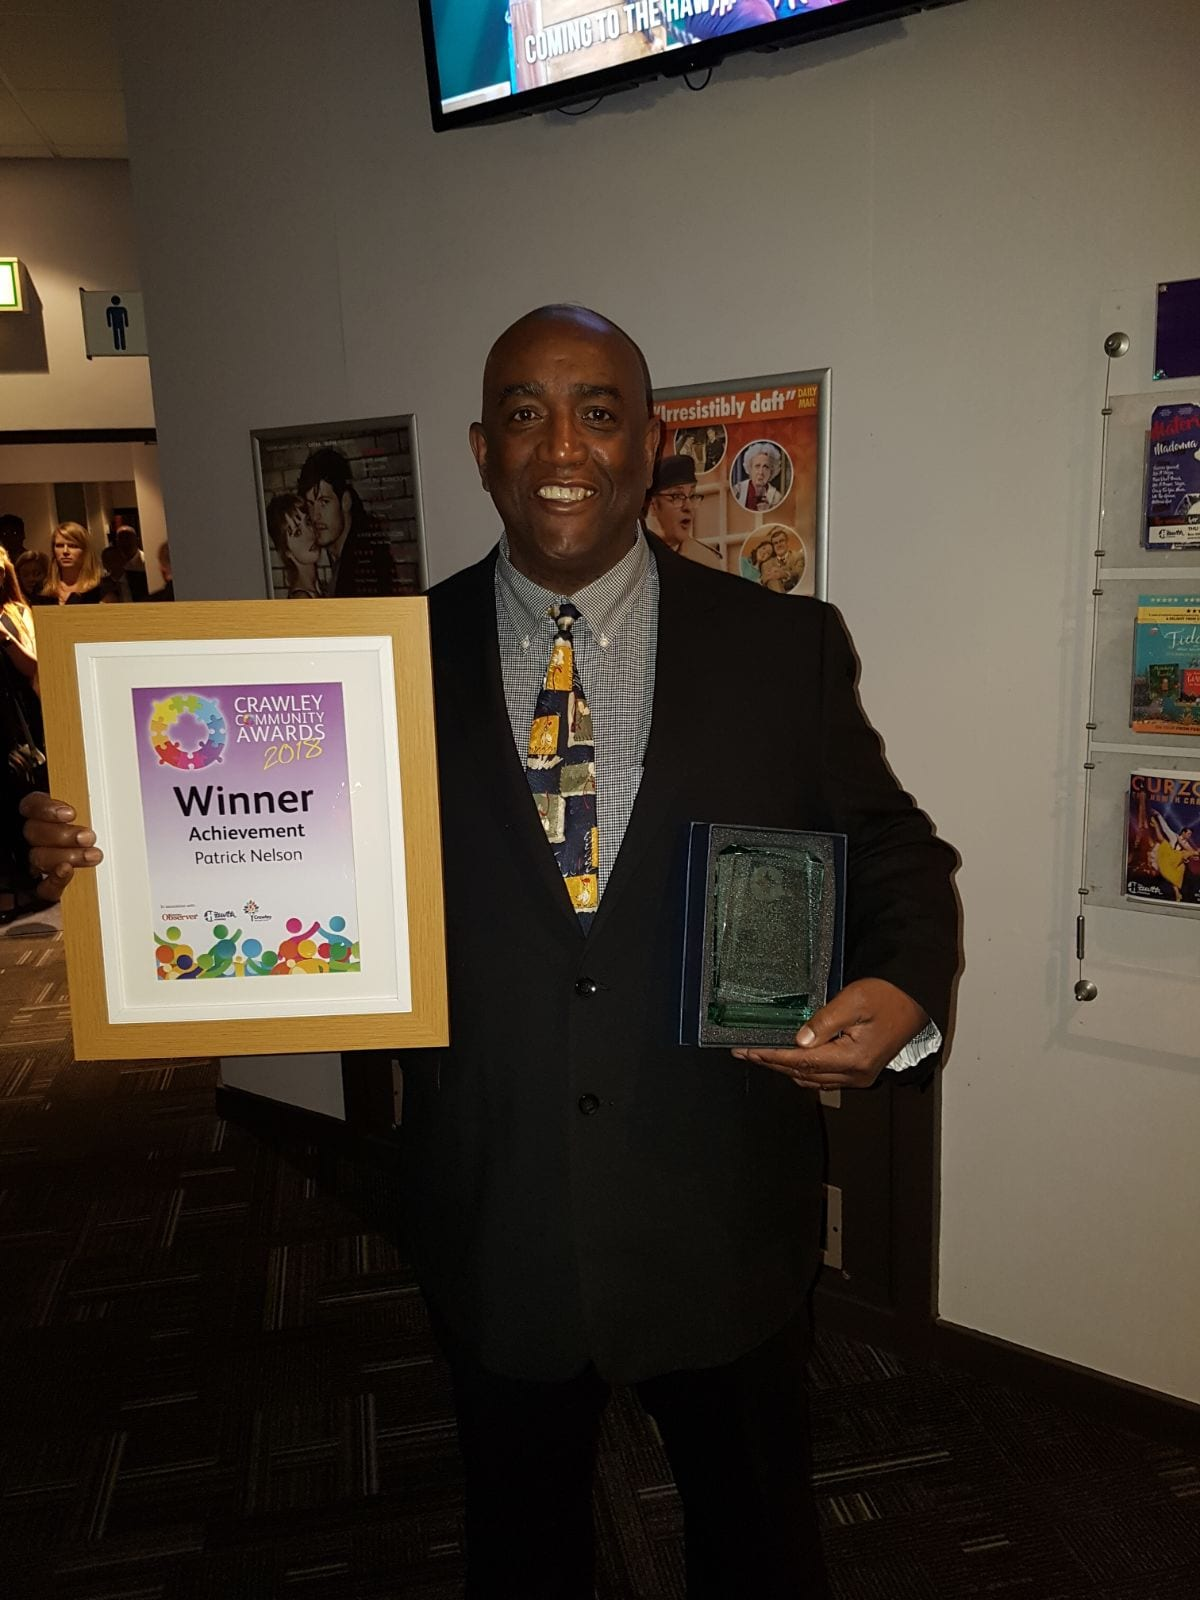 Just Ask Patrick wins Crawley Community Achievement Award